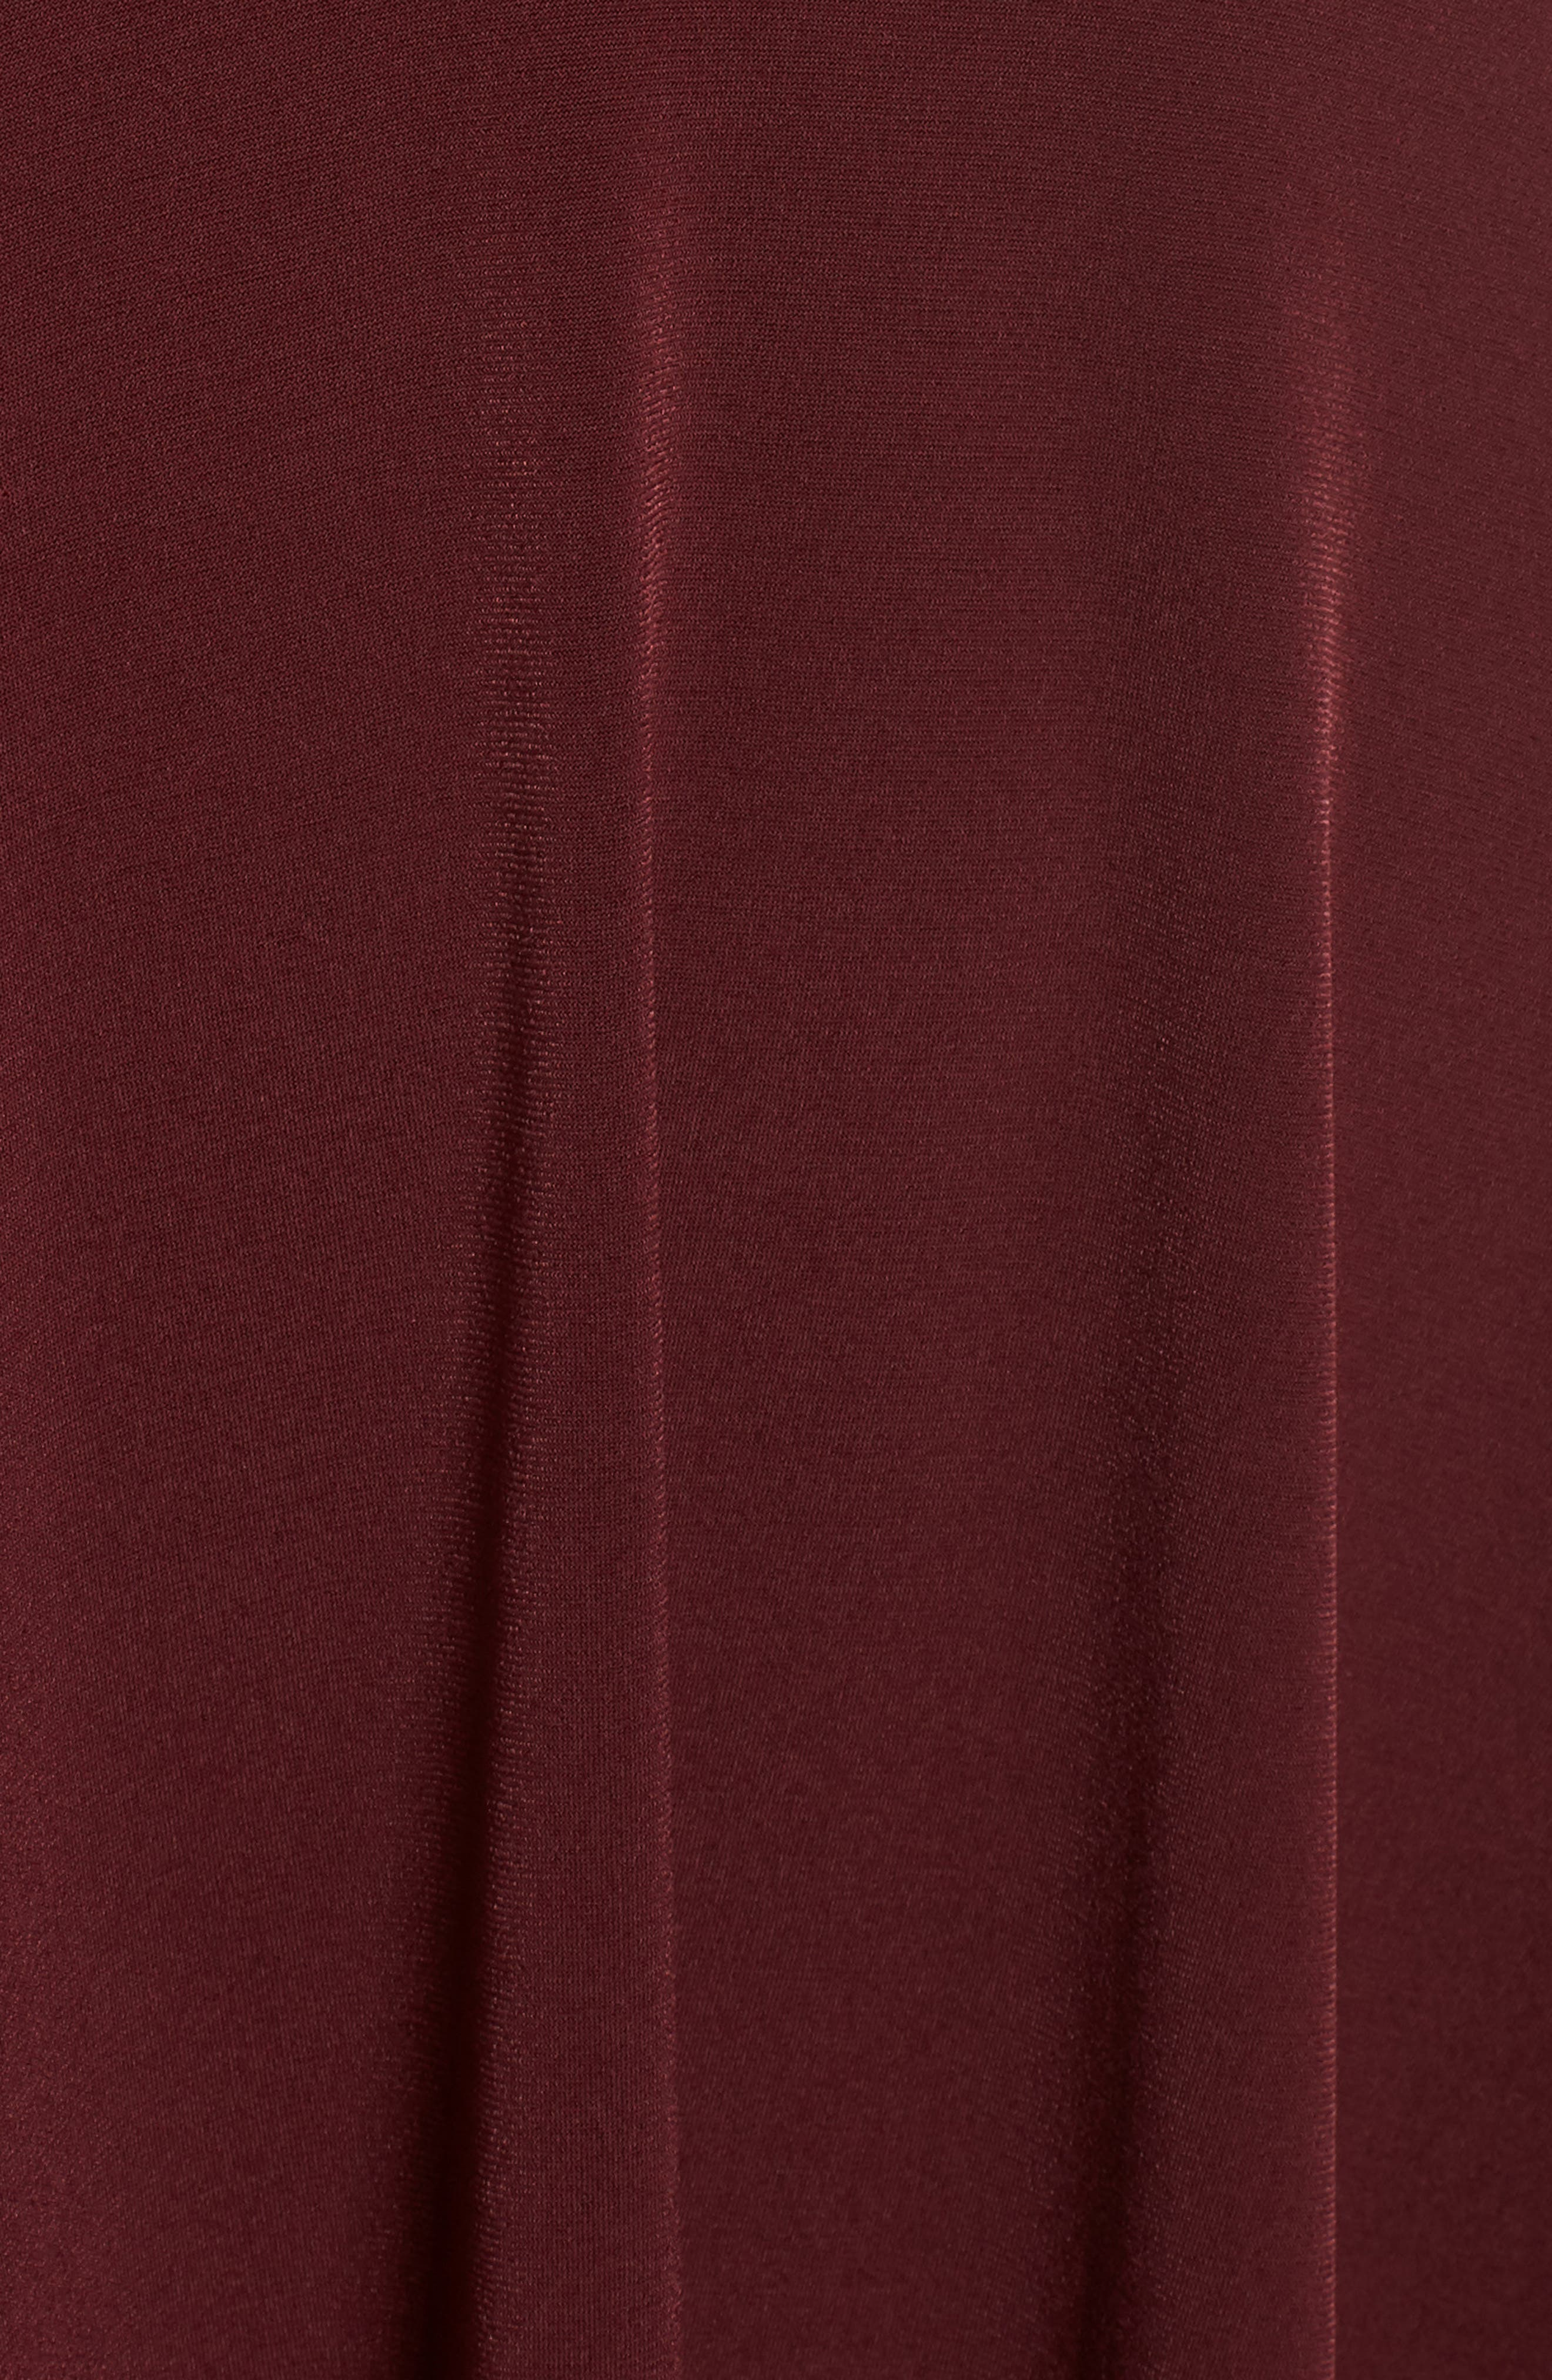 Crystal Halter Dress,                             Alternate thumbnail 5, color,                             WINE